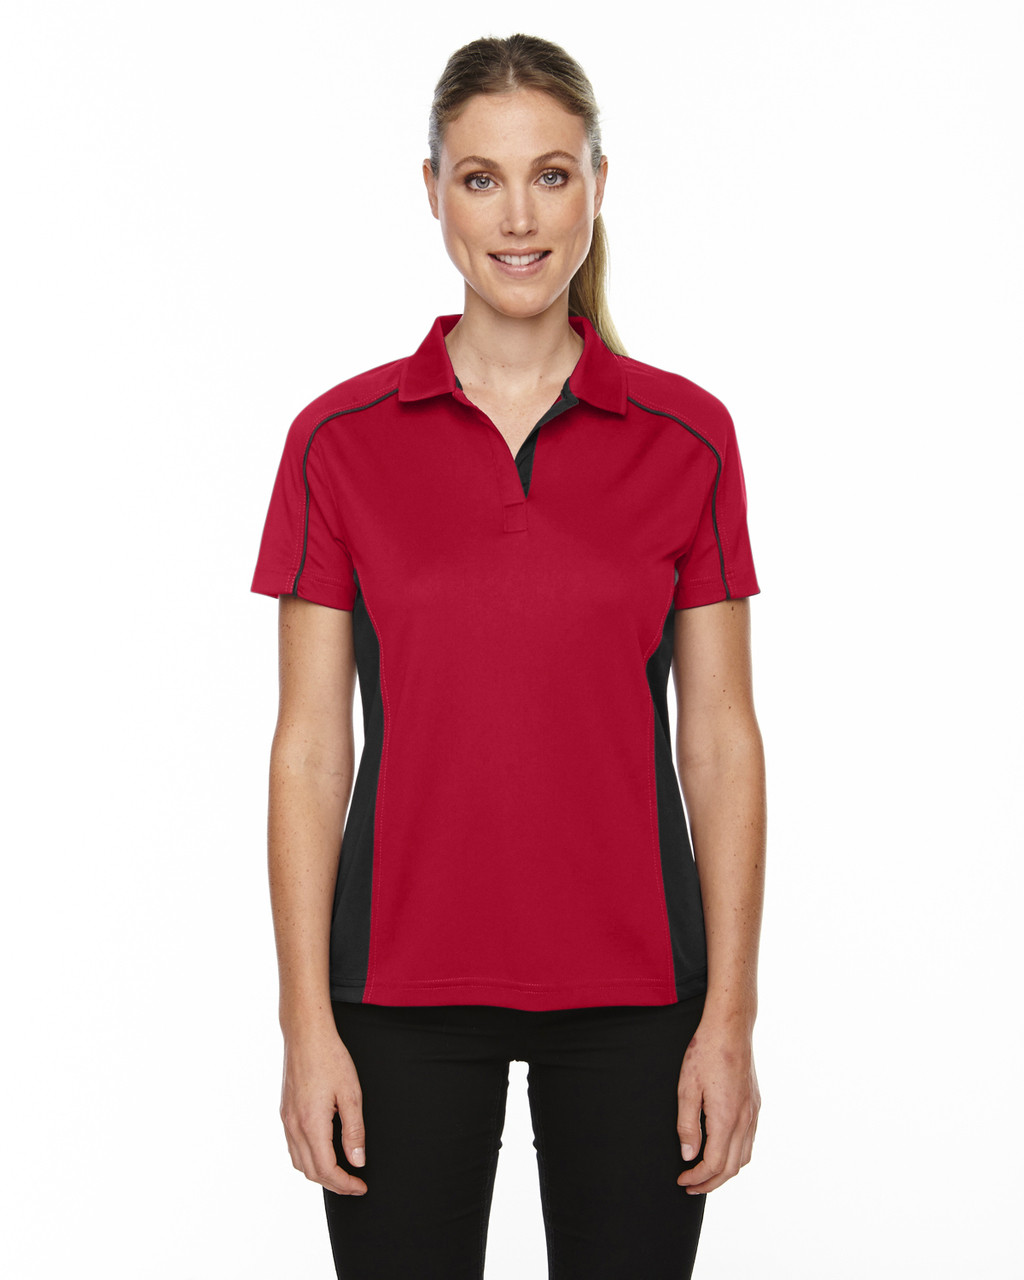 Classic Red - 75113 Ash City - Extreme Eperformance Ladies' Fuse Plus Colourblock Polo Shirt   Blankclothing.ca